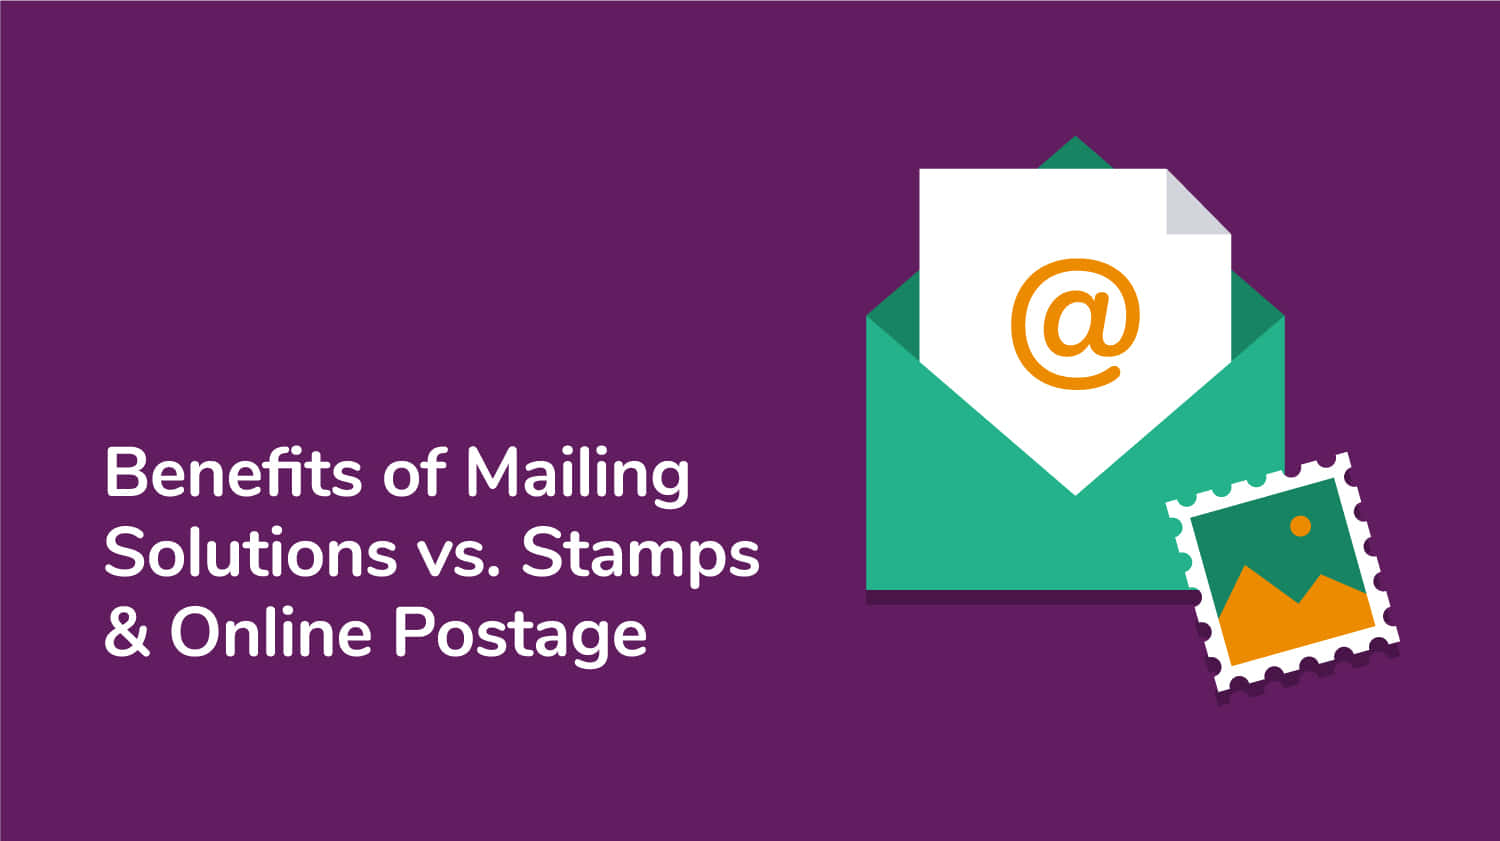 Mailing solutions vs Stamps